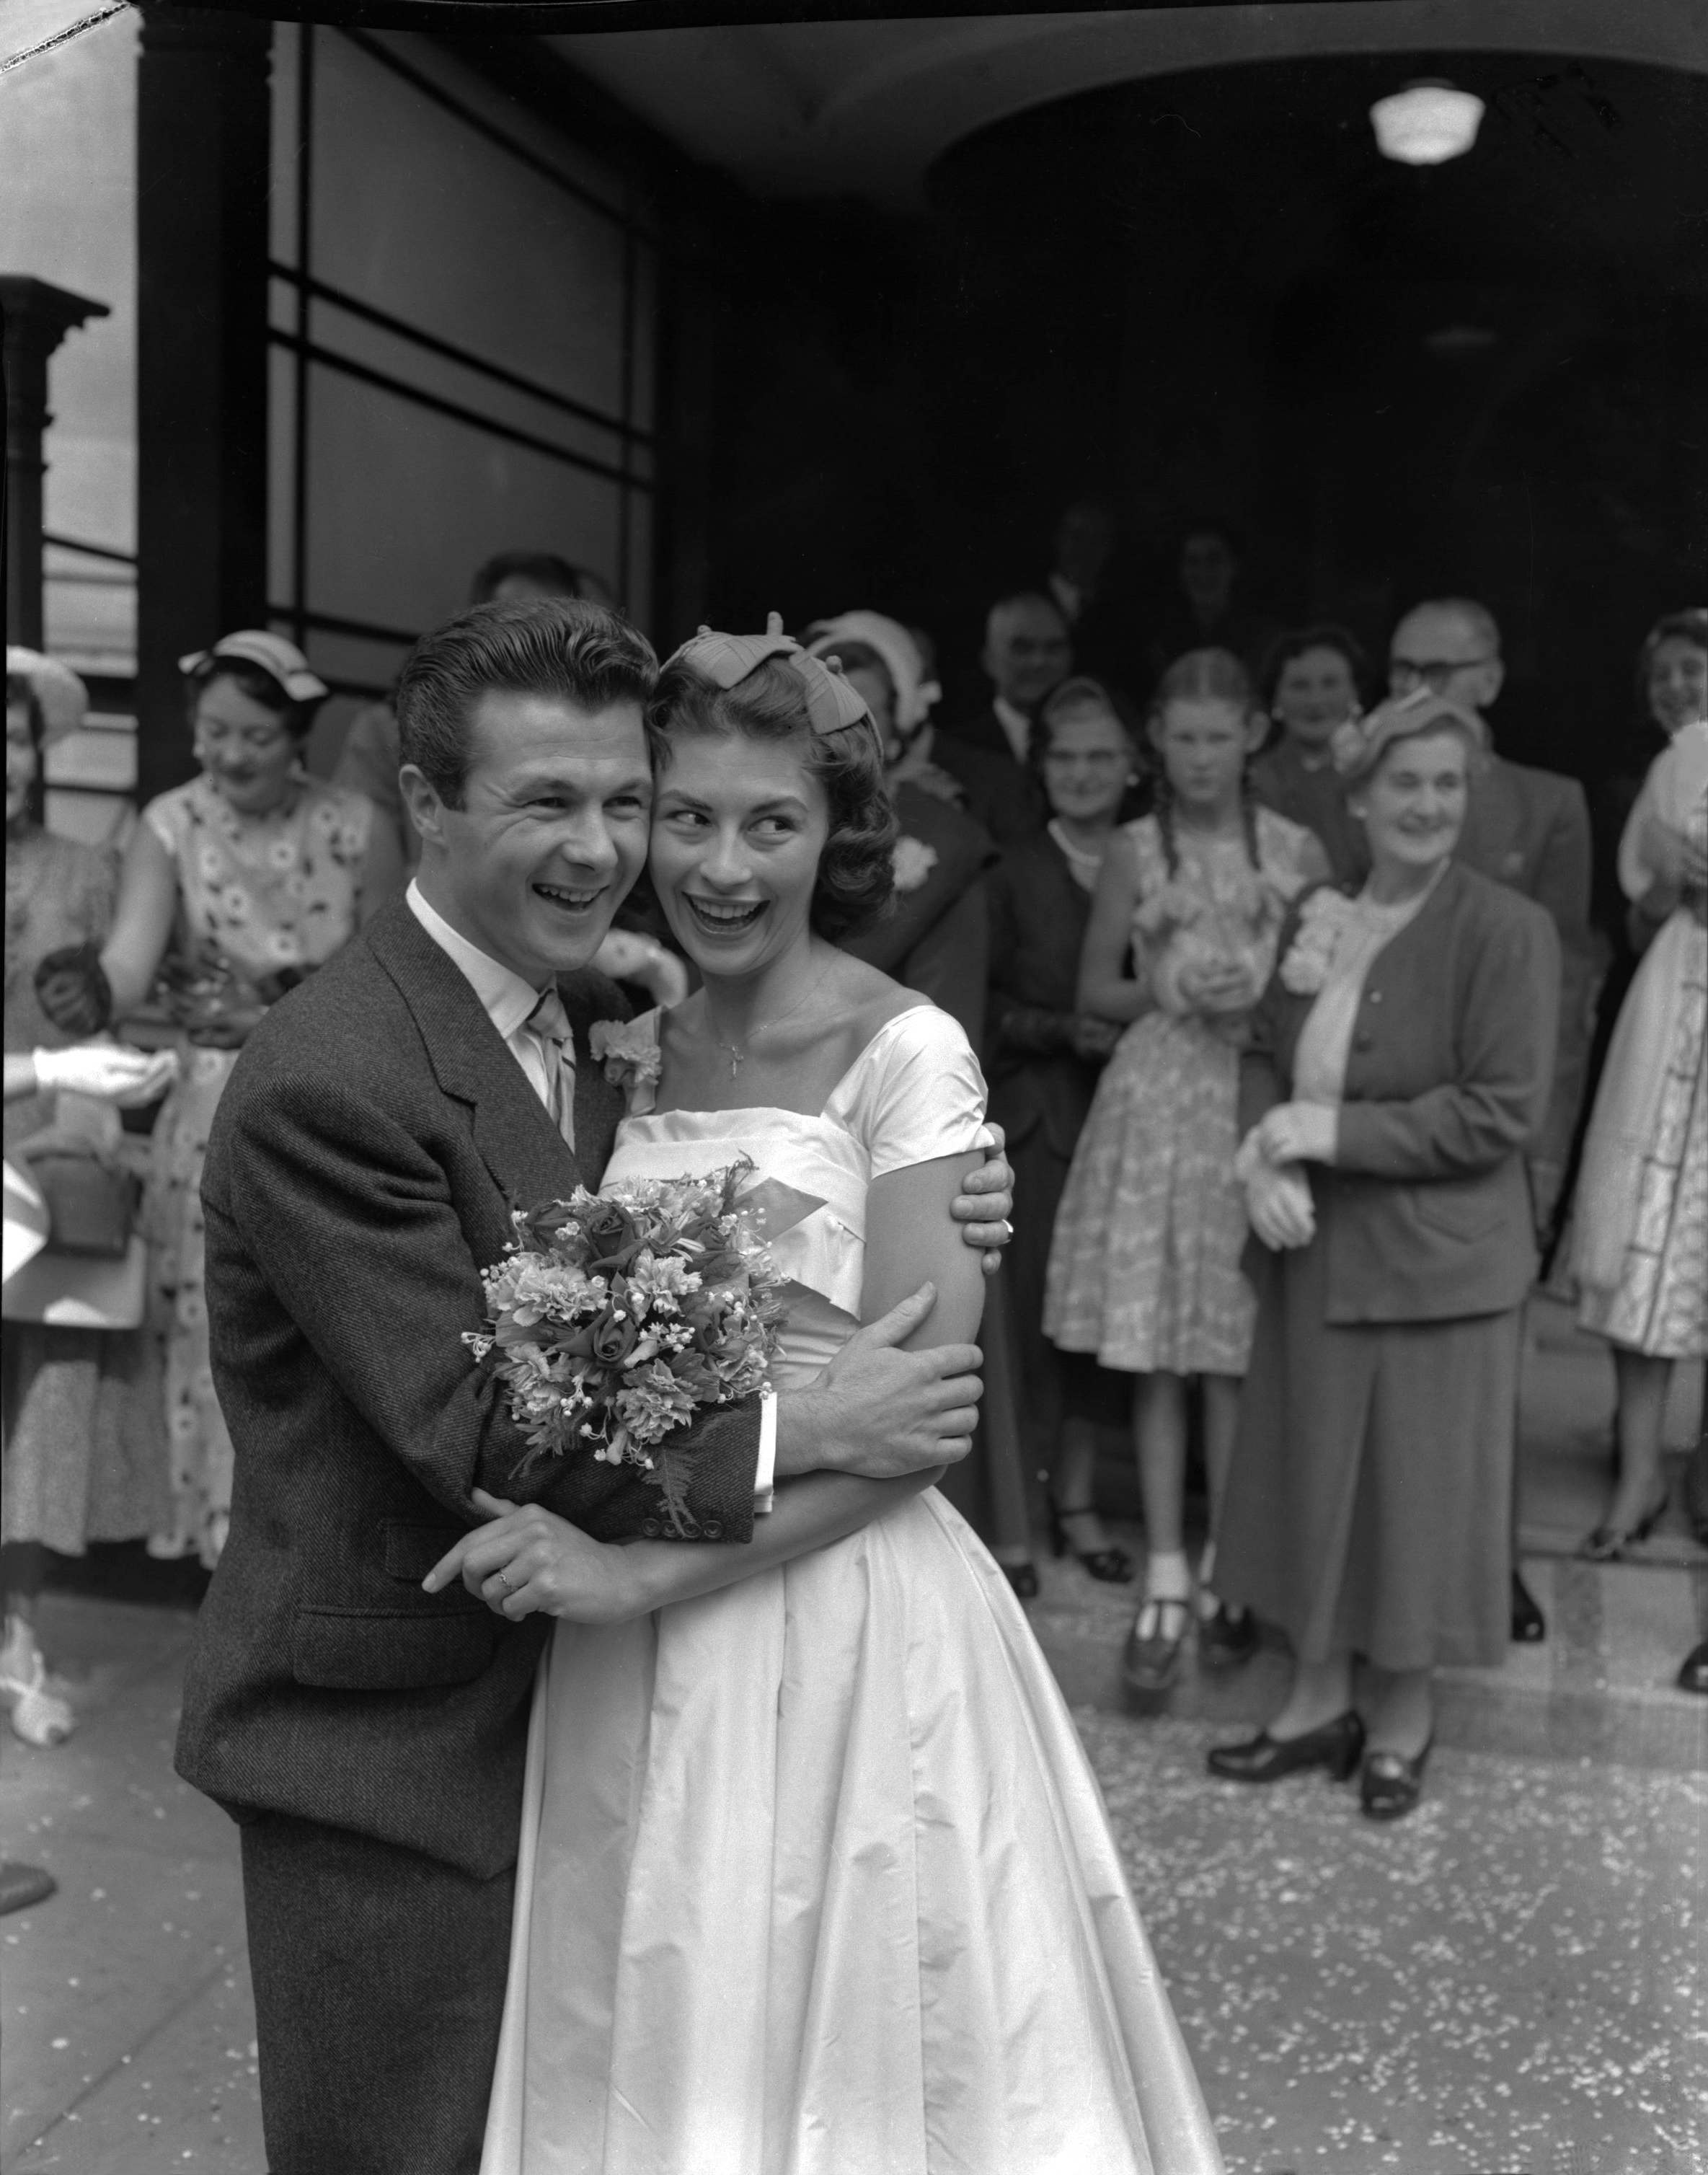 English actress Nanette Newman, 21, and actor-writer Bryan Forbes are shown after their wedding at London's Caxton Hall Register Office, United Kingdom on August 27, 1955. The couple met 18 months ago when Bryan was under a train at London's Marylebone Station; he was playing in a film and Miss Newman was watching. they were married for 58 years, until Forbes' death in 2013. (AP Photo/John Rider)